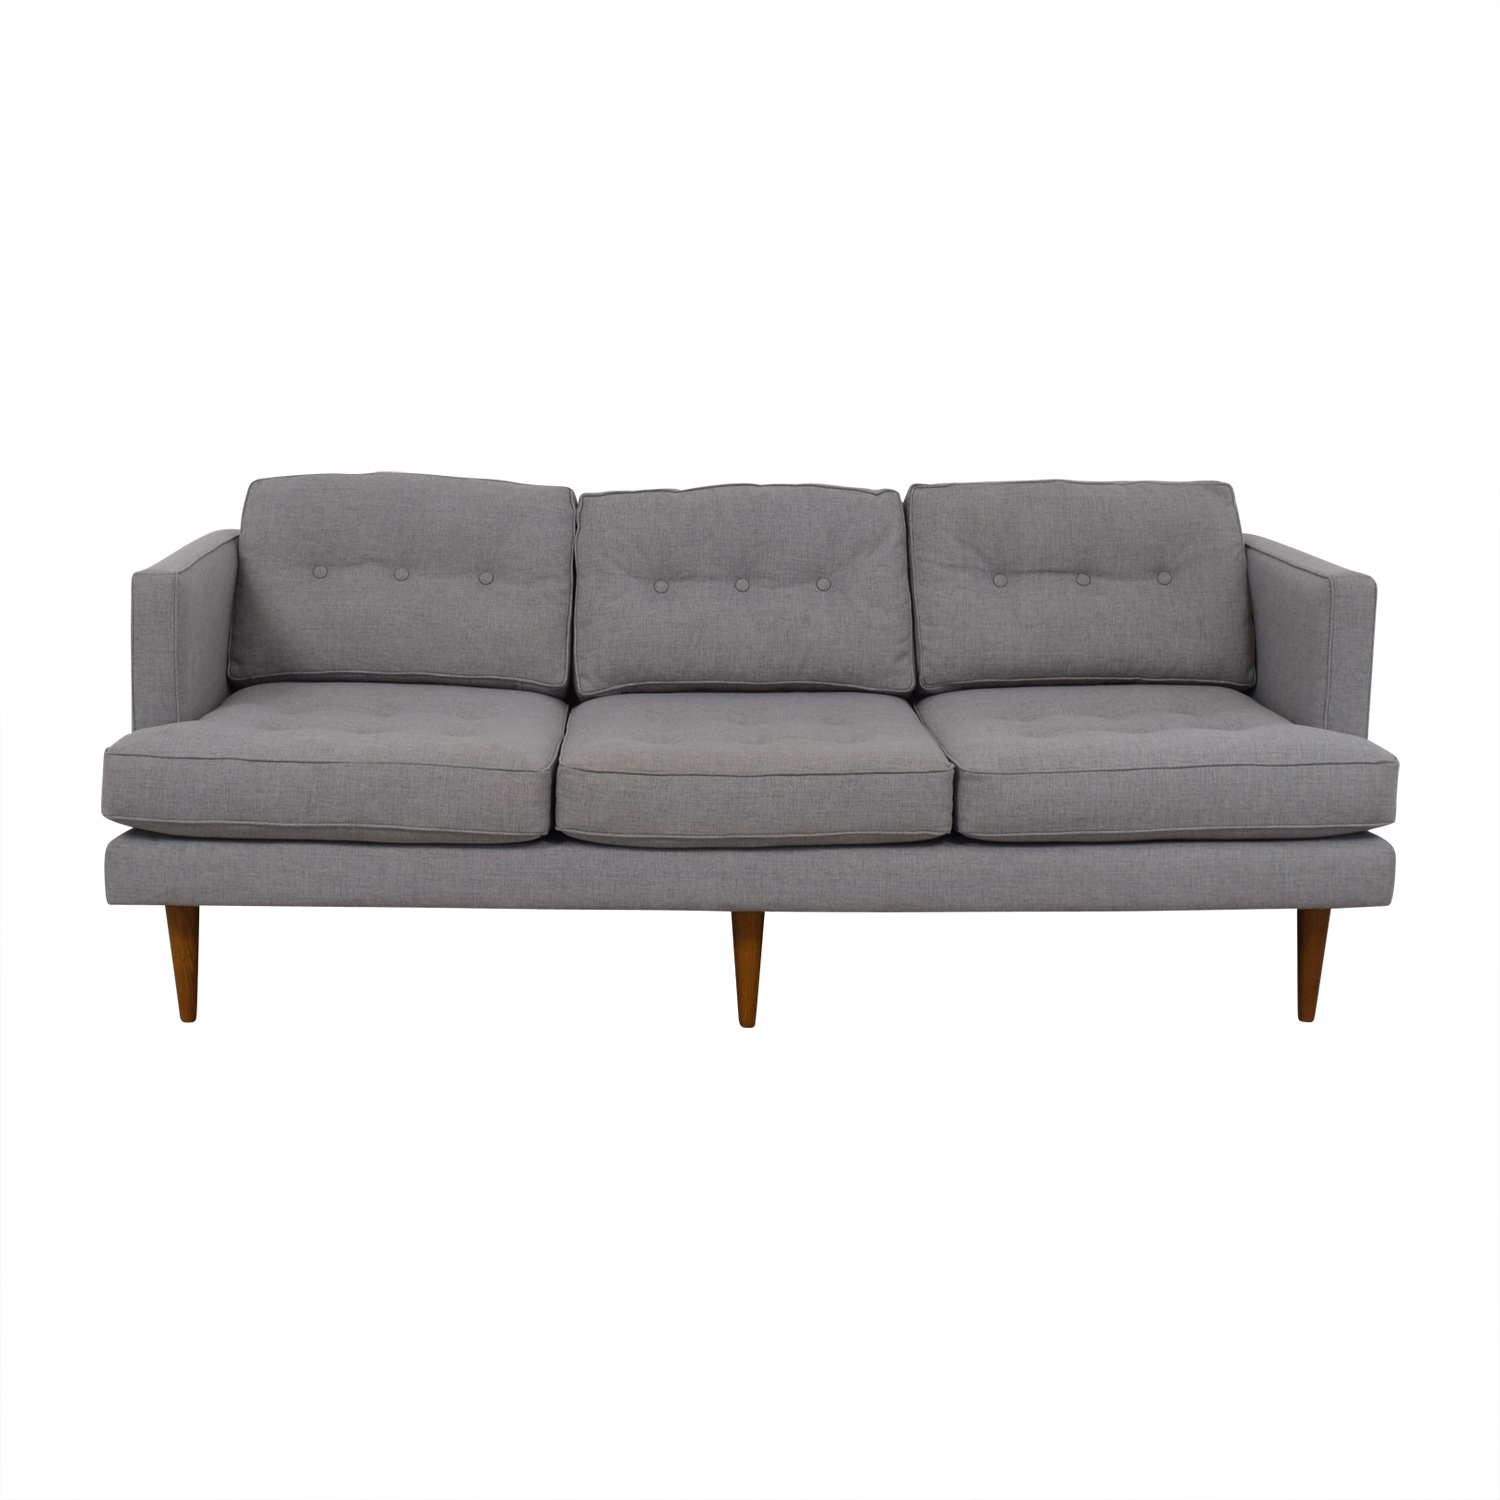 West Elm West Elm Peggy Feather Gray Heathered Crosshatch Tufted Sofa coupon